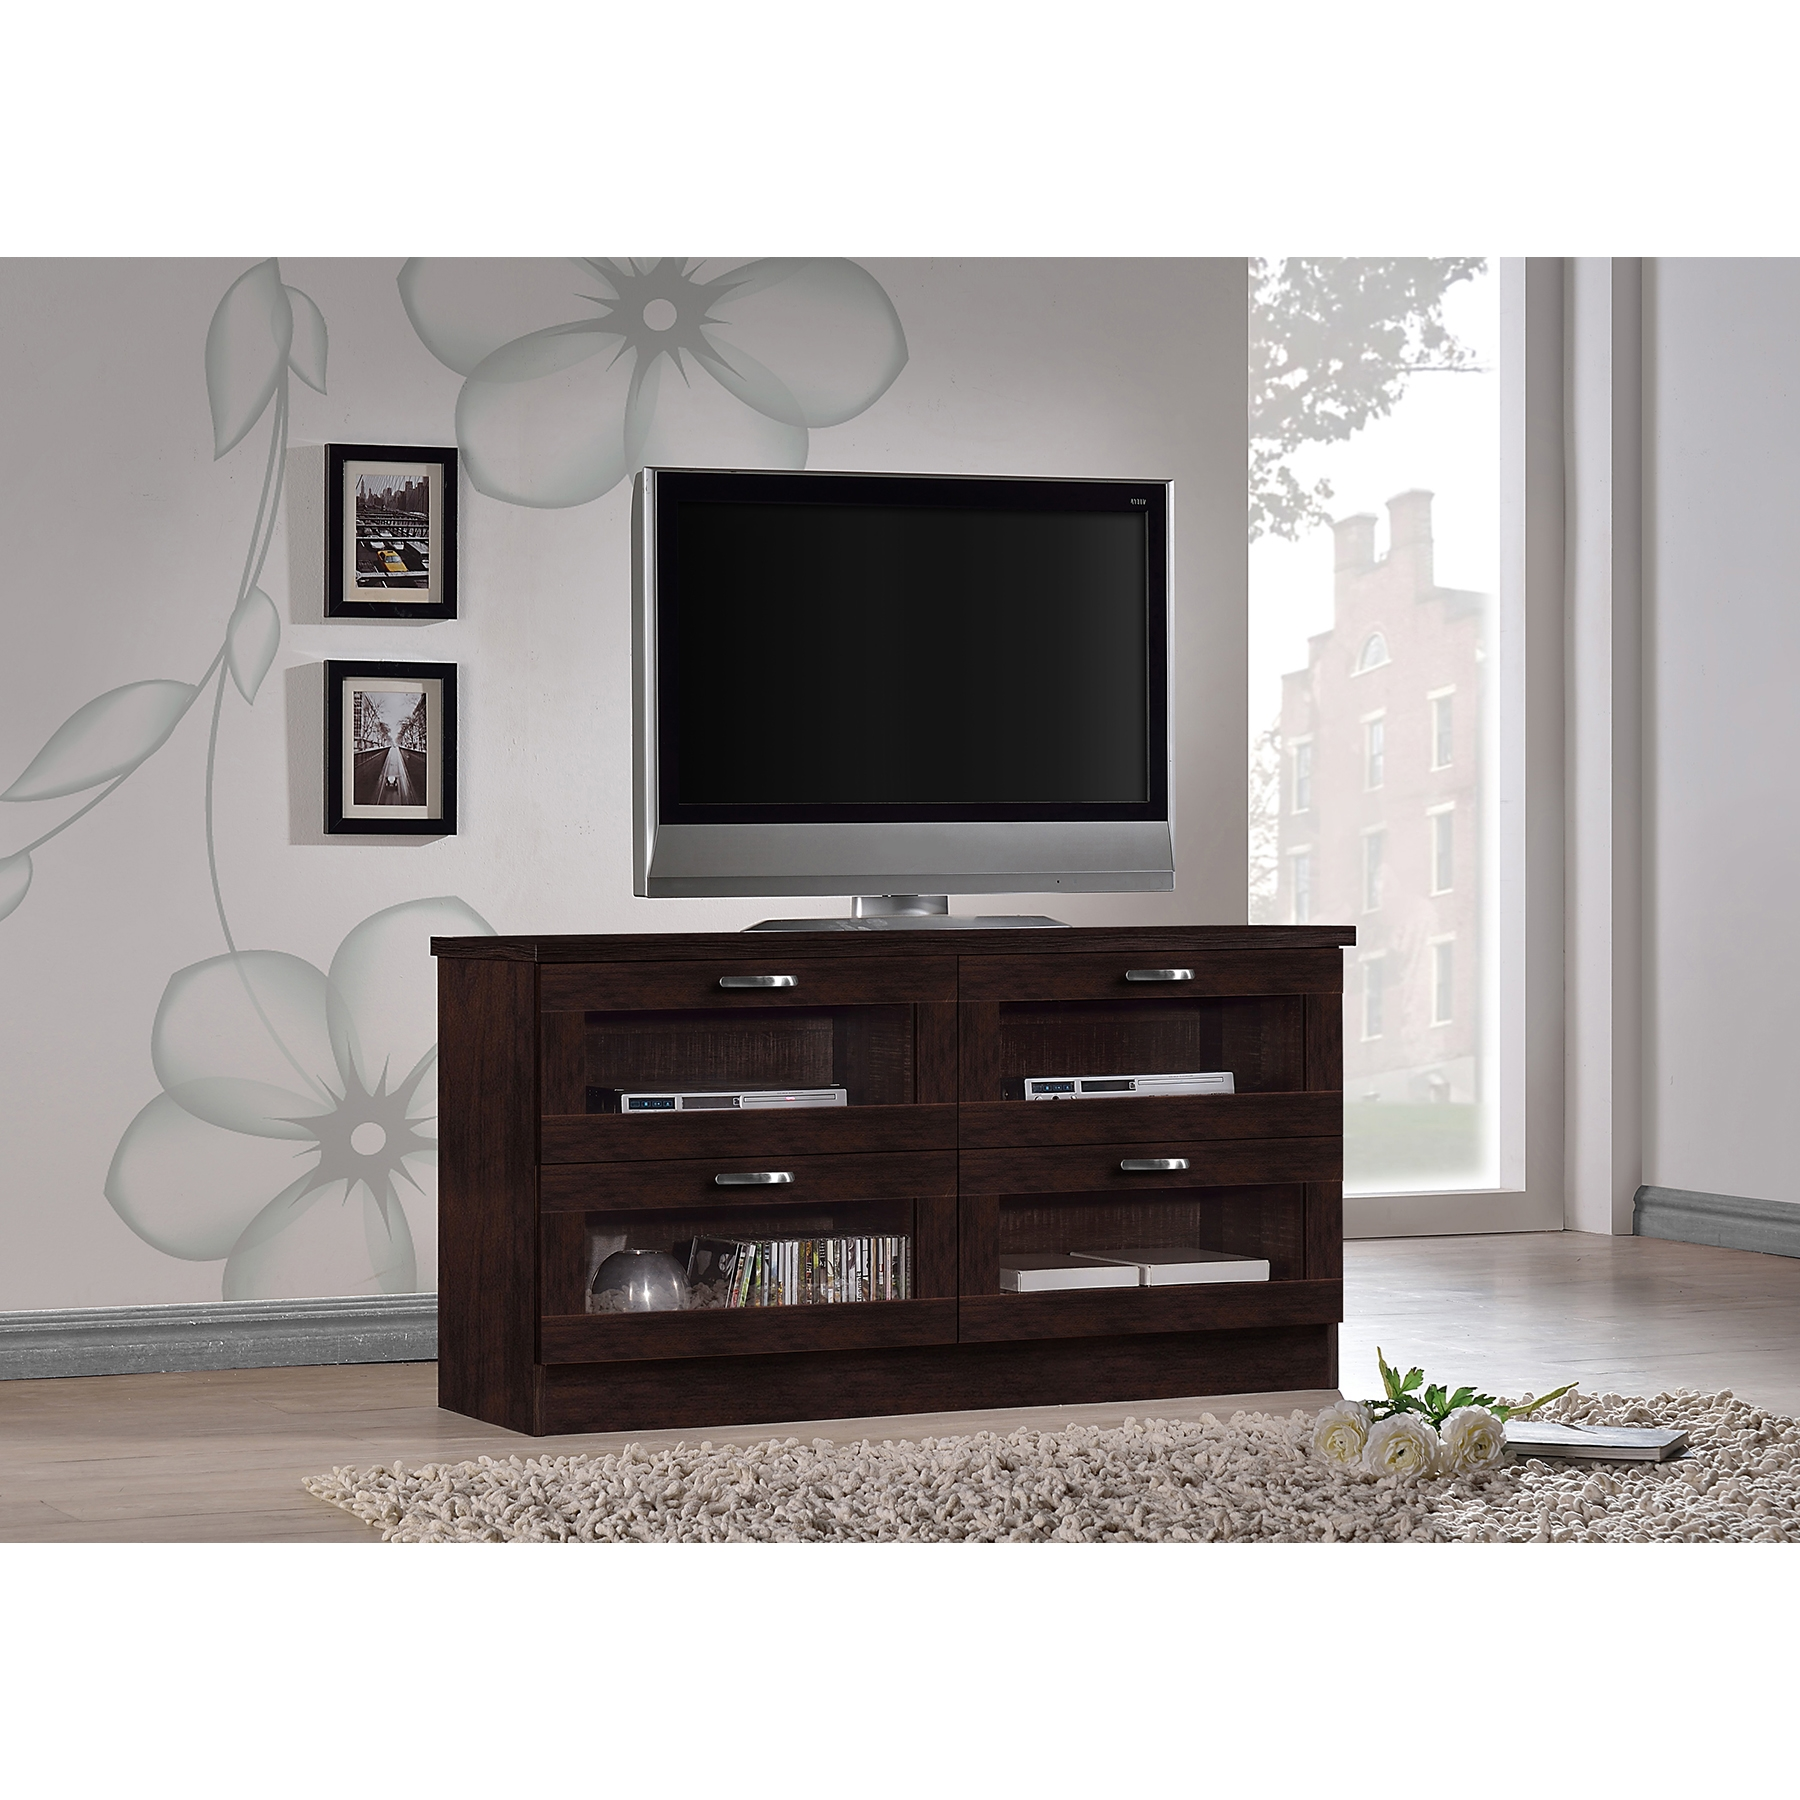 Wooden Tv Stand With Glass Doors Latest Wood Tv Stands With Glass  # Muebles Rudnick